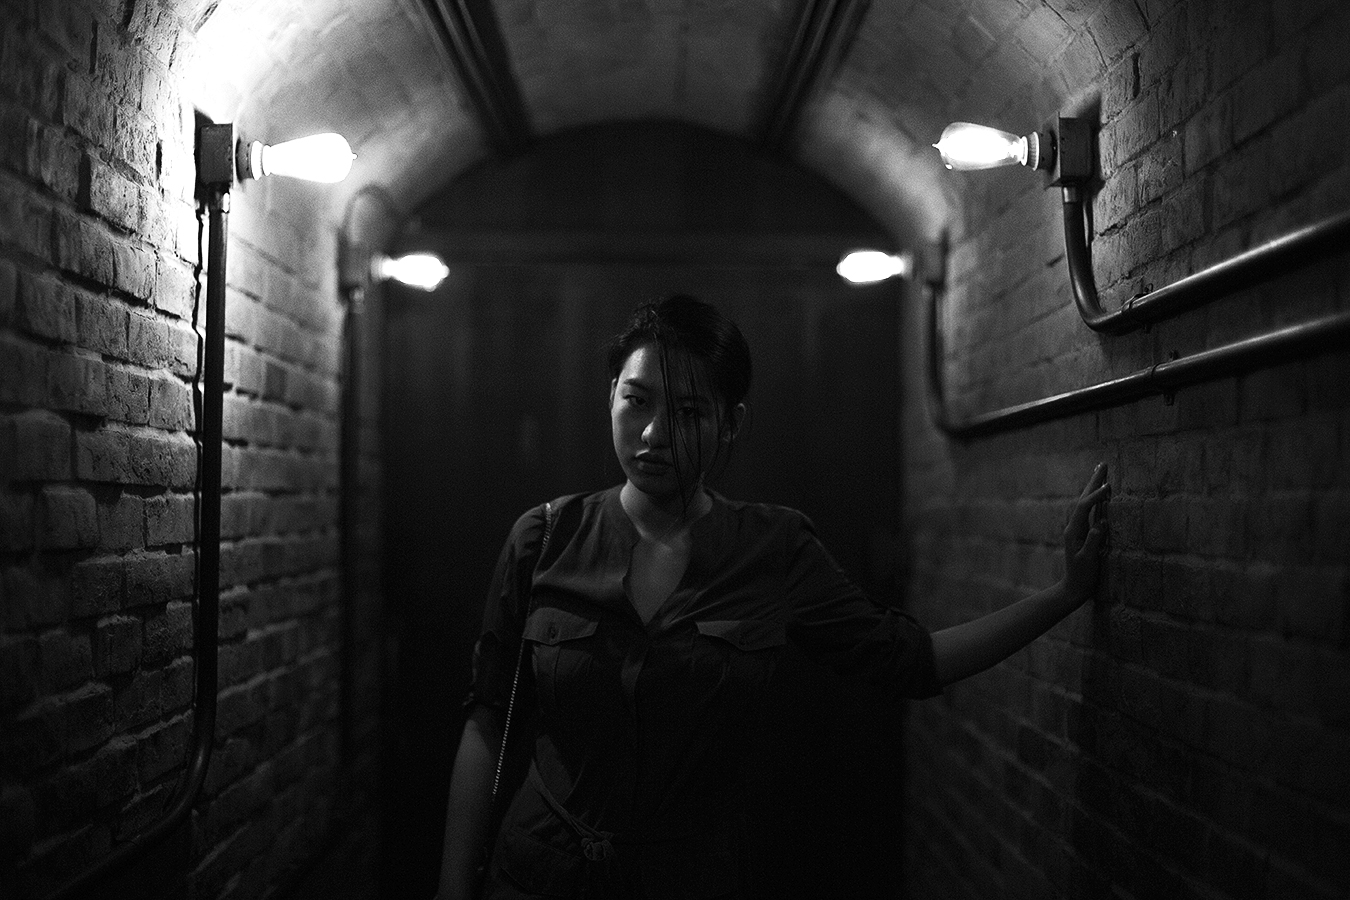 Linda_Ruan_under_the_light_black_and_white_canal